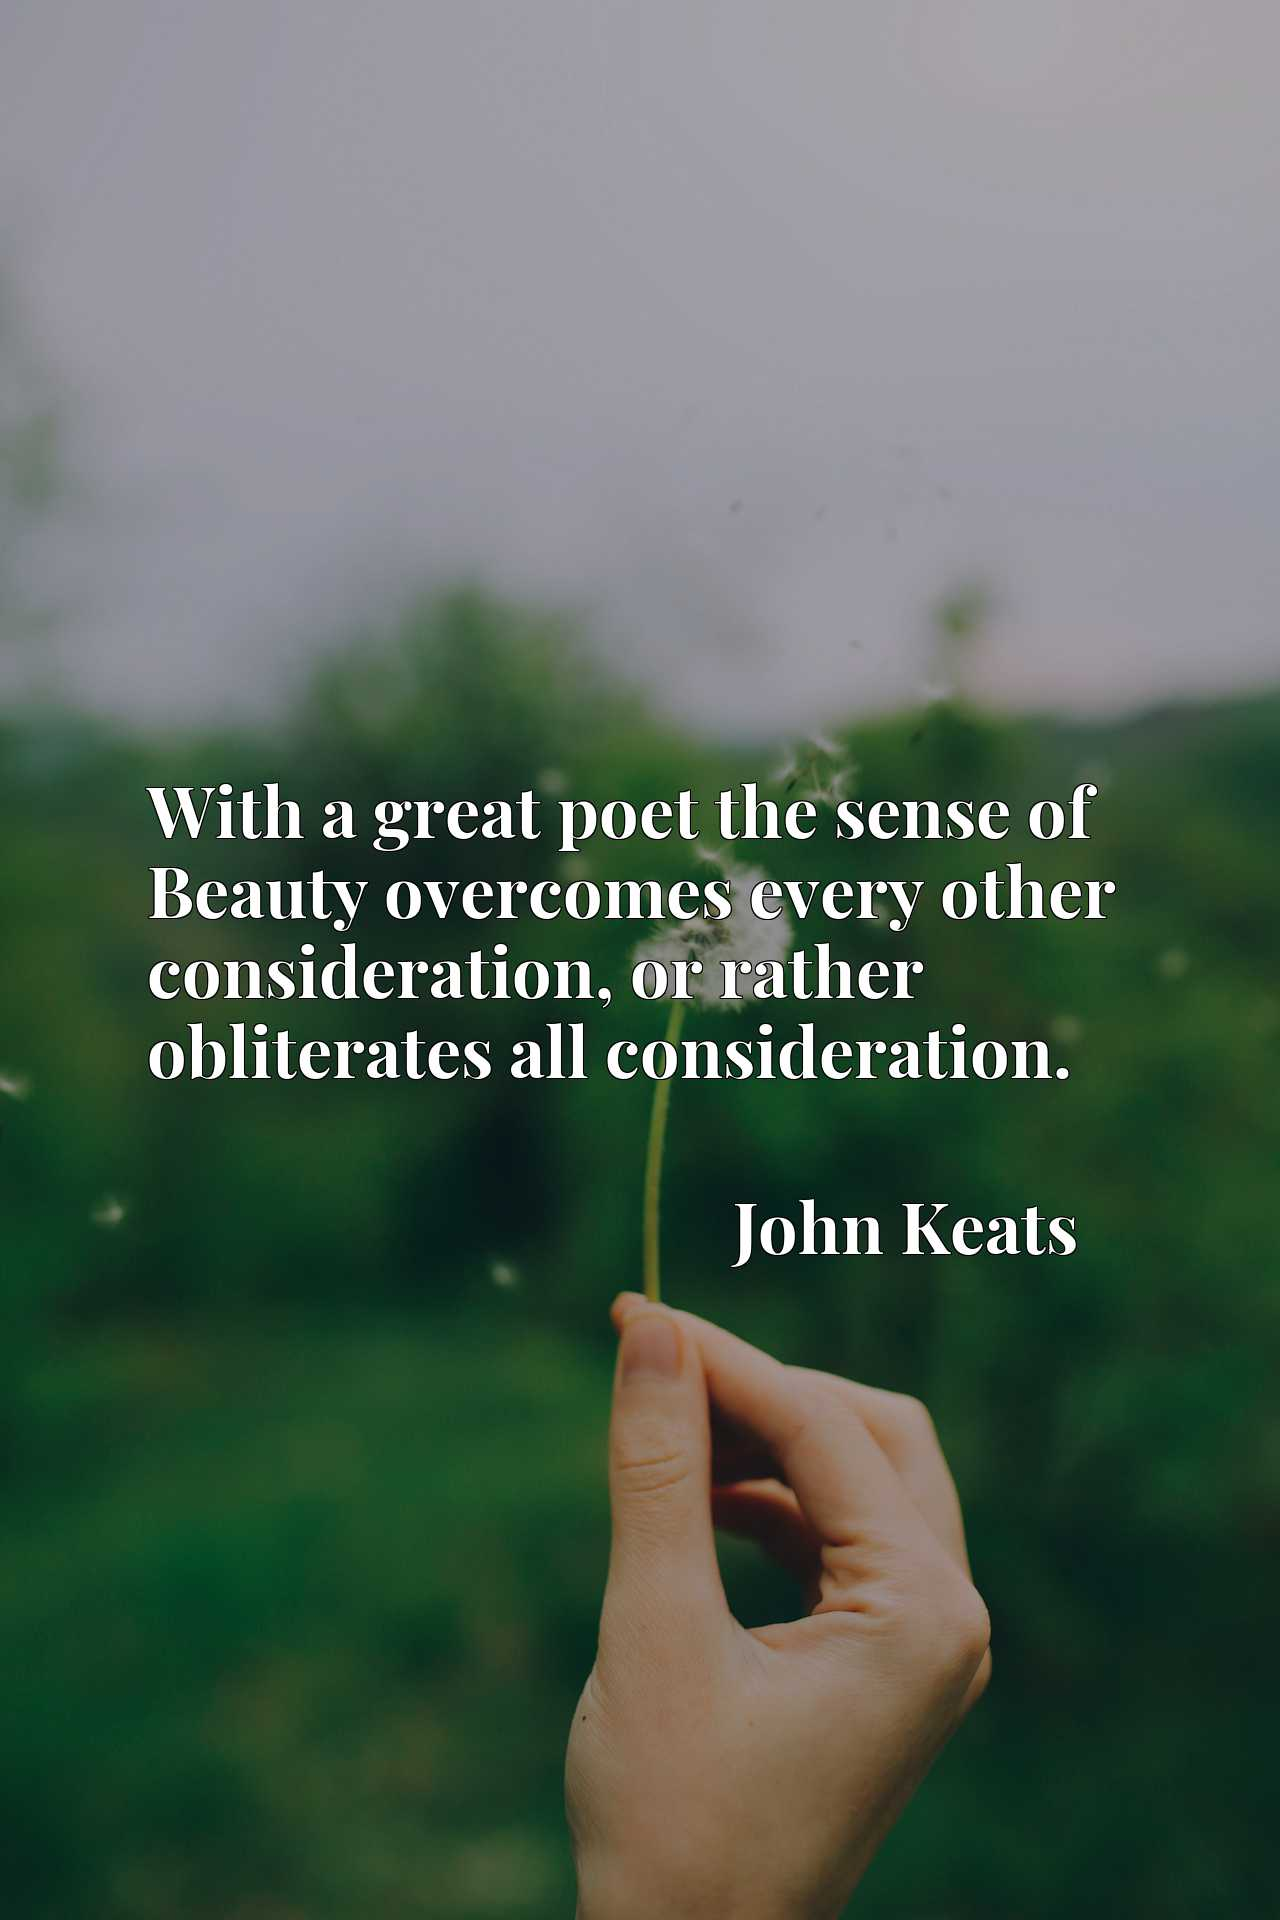 With a great poet the sense of Beauty overcomes every other consideration, or rather obliterates all consideration.